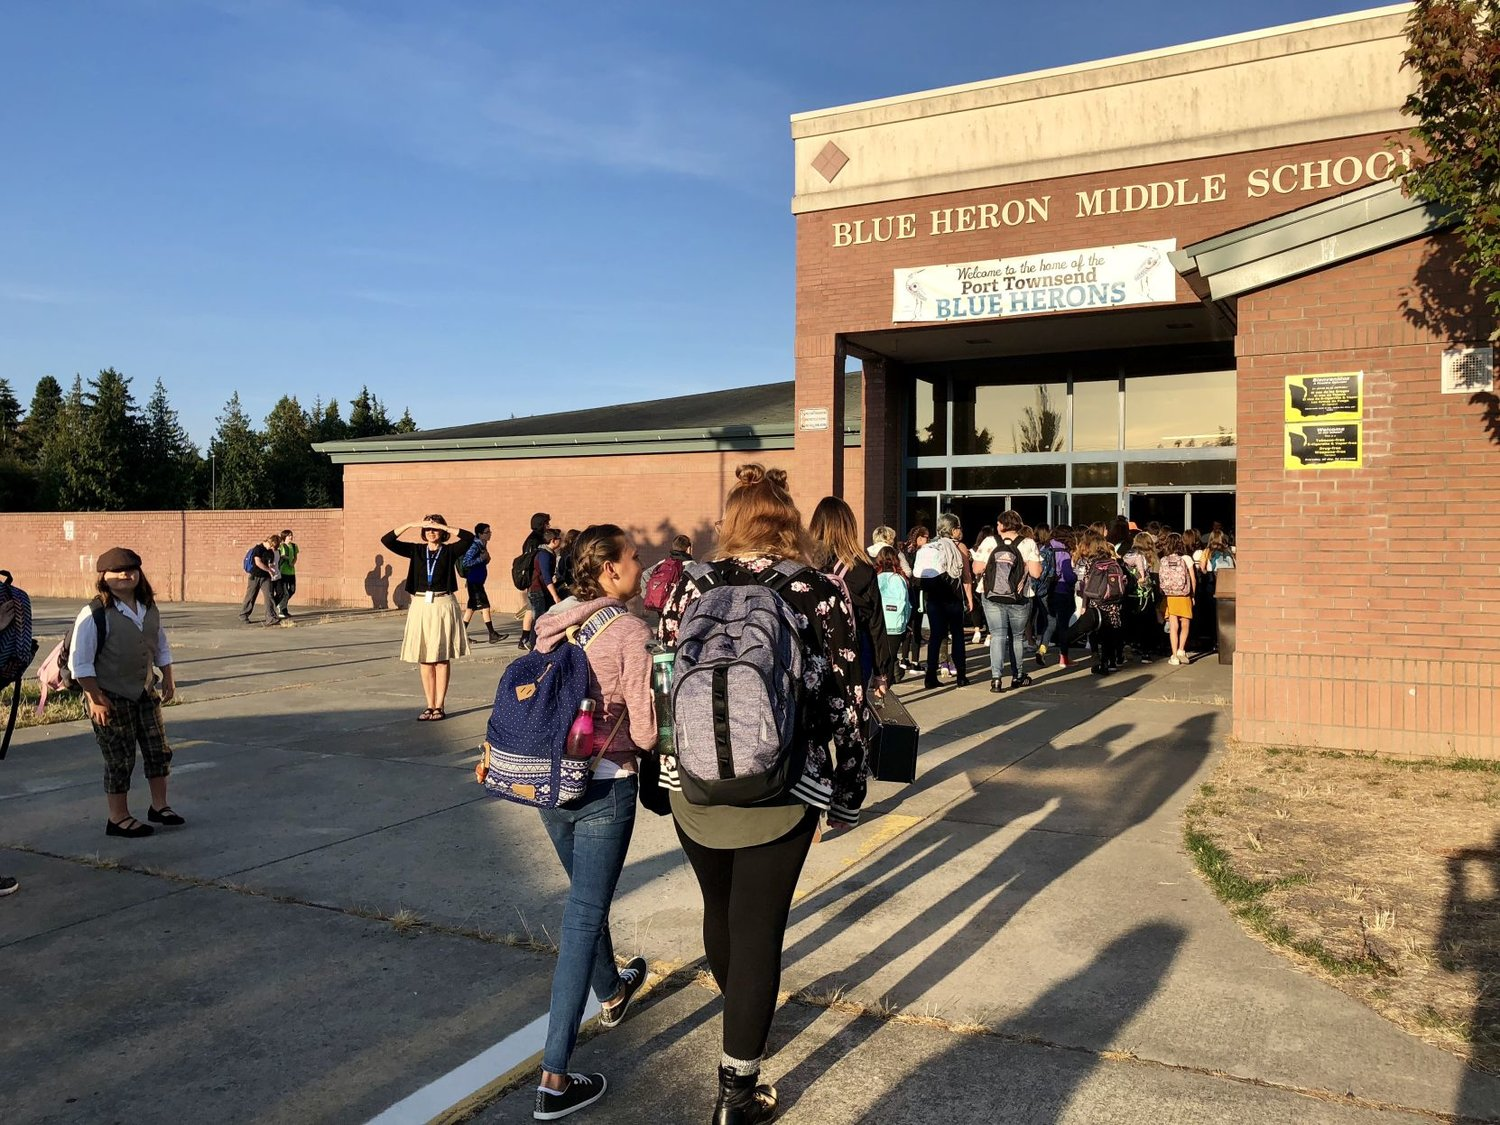 Students pour into Blue Heron Middle School, which was reduced from grades 4-8 last school year to grades 6-8 this school year, at the start of the 2018-19 school year on Sept. 4.